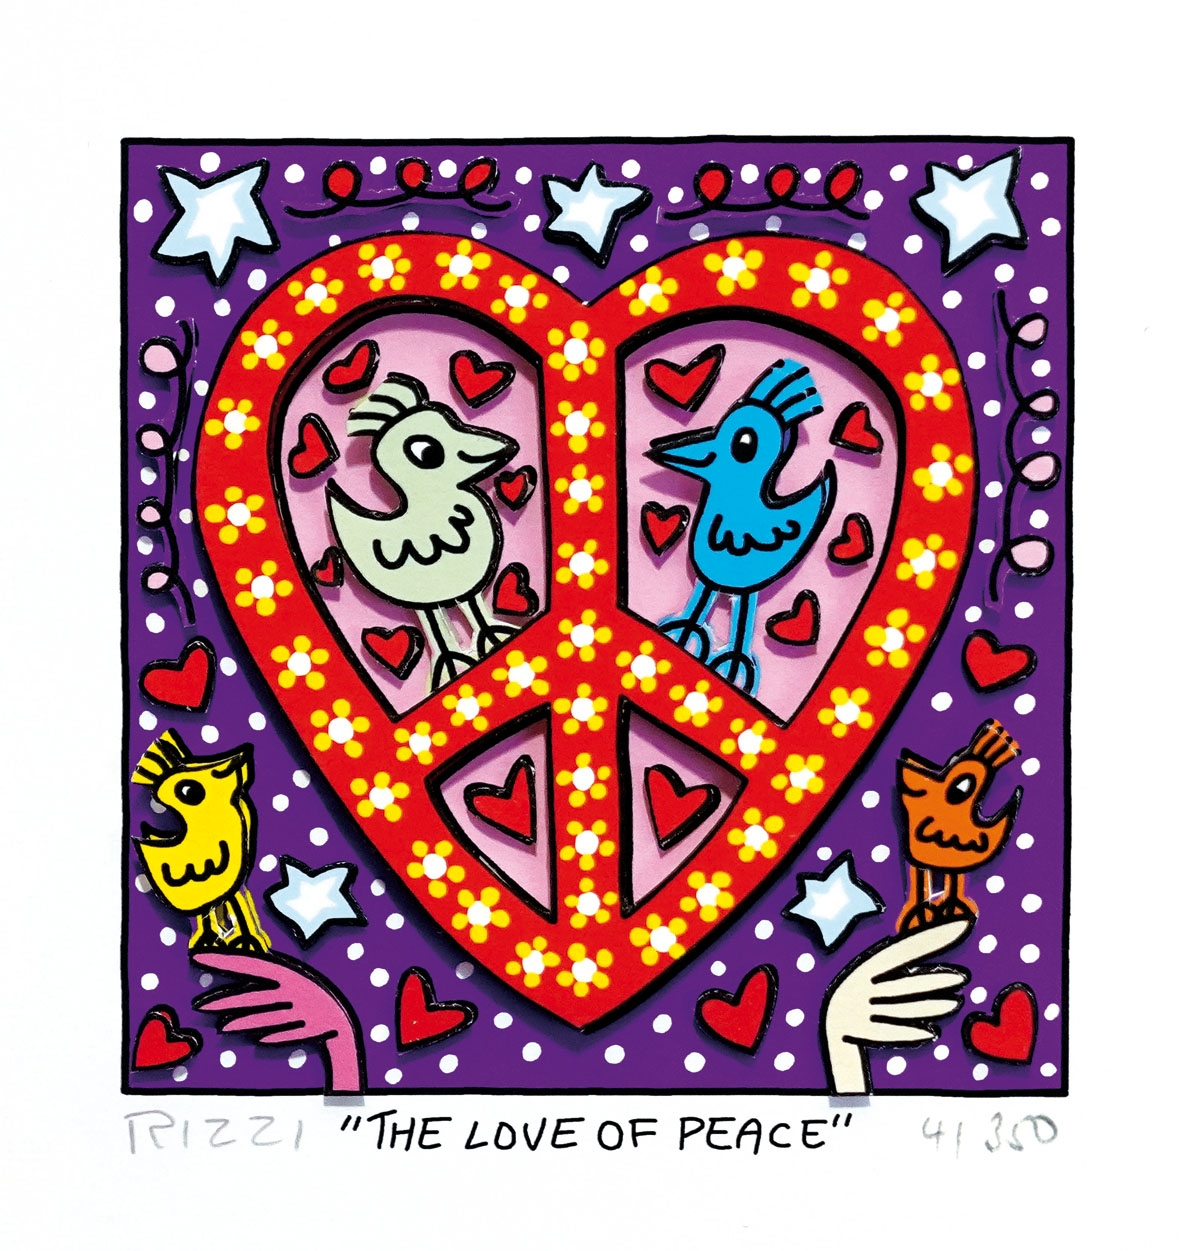 The Love of Peace 2018